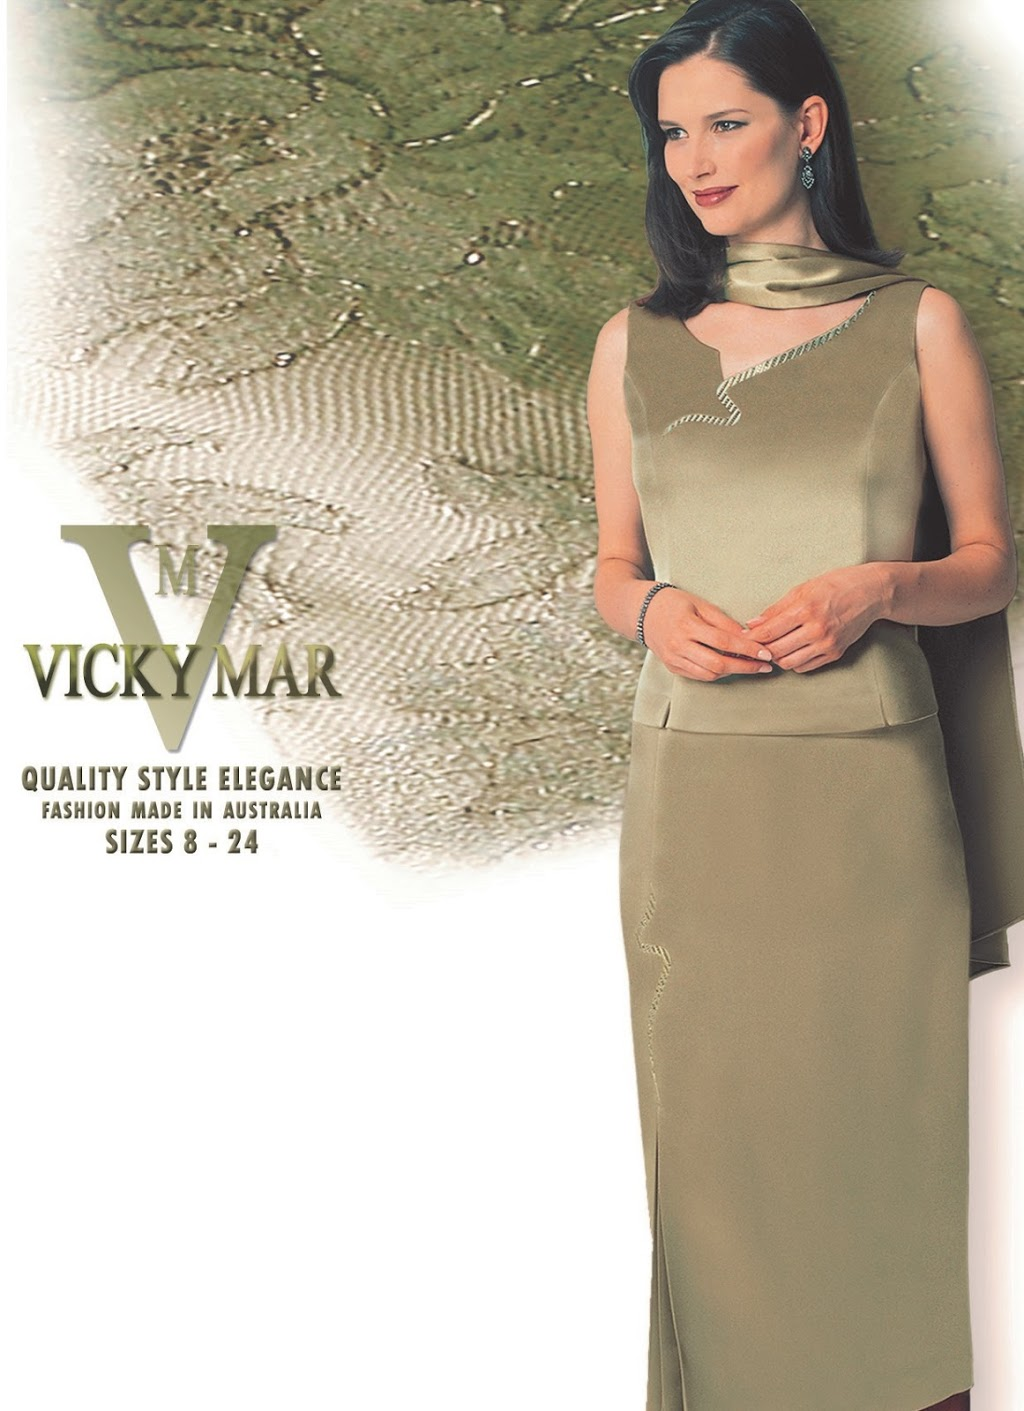 Vicky Mar Fashions | clothing store | 30-34 Smith St, Marrickville NSW 2204, Australia | 0295199055 OR +61 2 9519 9055